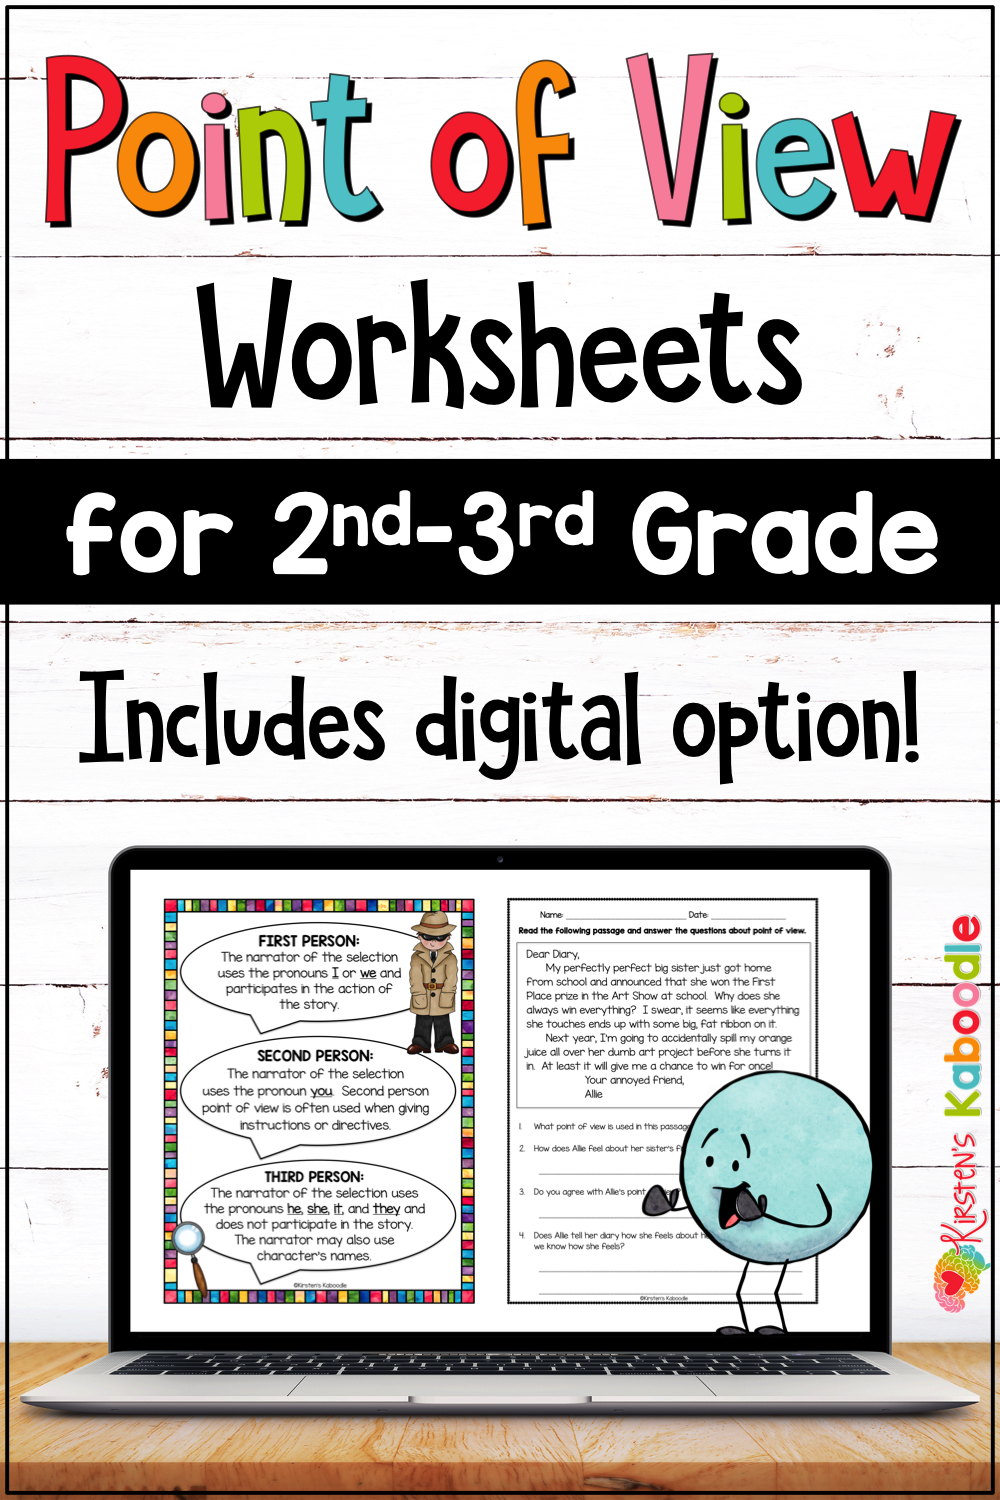 Point Of View Worksheets And Anchor Charts For 2nd 3rd Grade W Digital Option Writing Sight Words Ela Anchor Charts Point Of View [ 1500 x 1000 Pixel ]